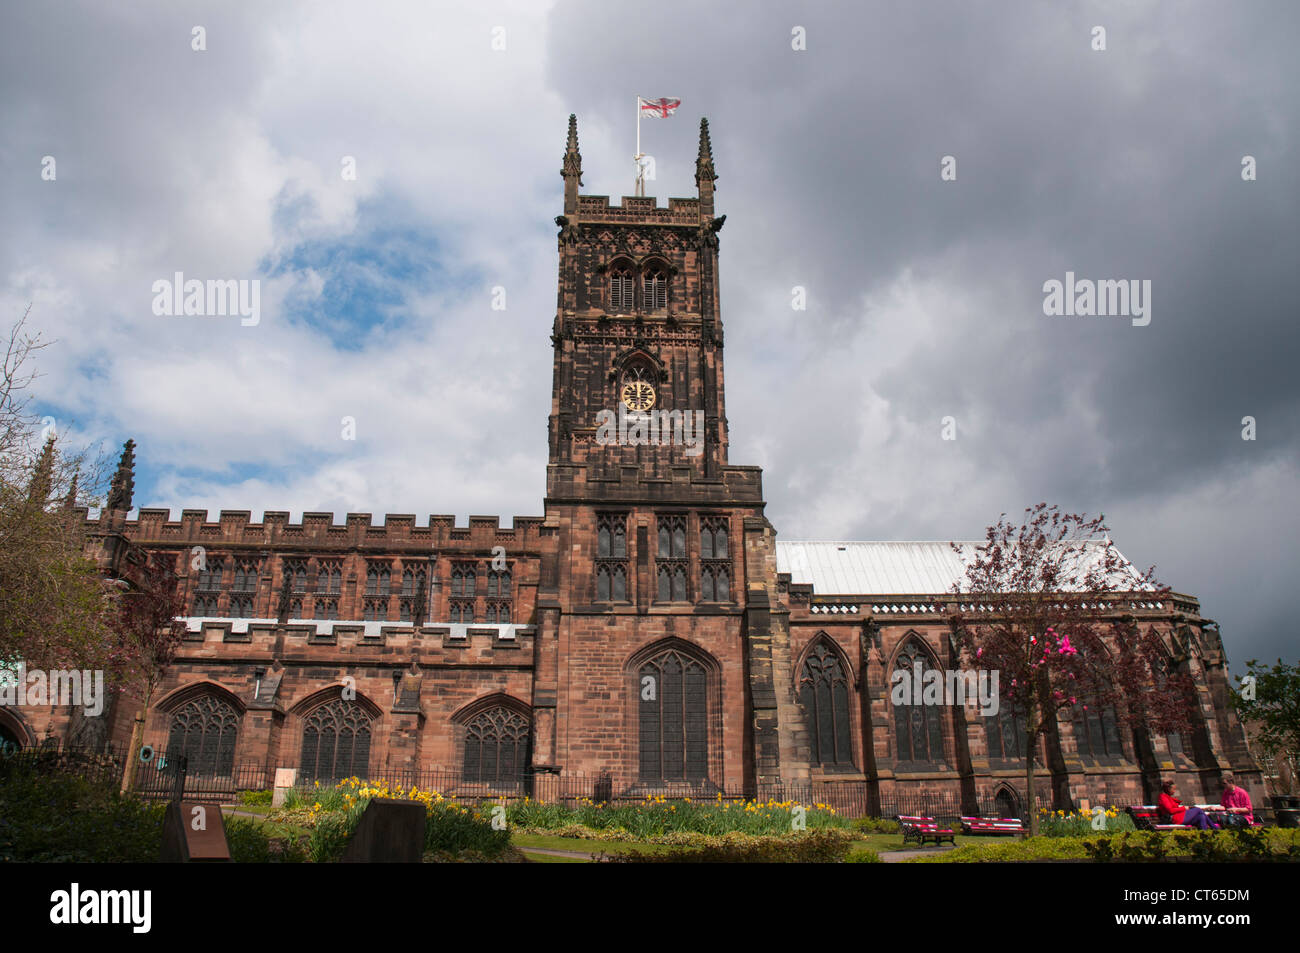 St Peter's Collegiate Church in Wolverhampton, West Midlands, England - Stock Image